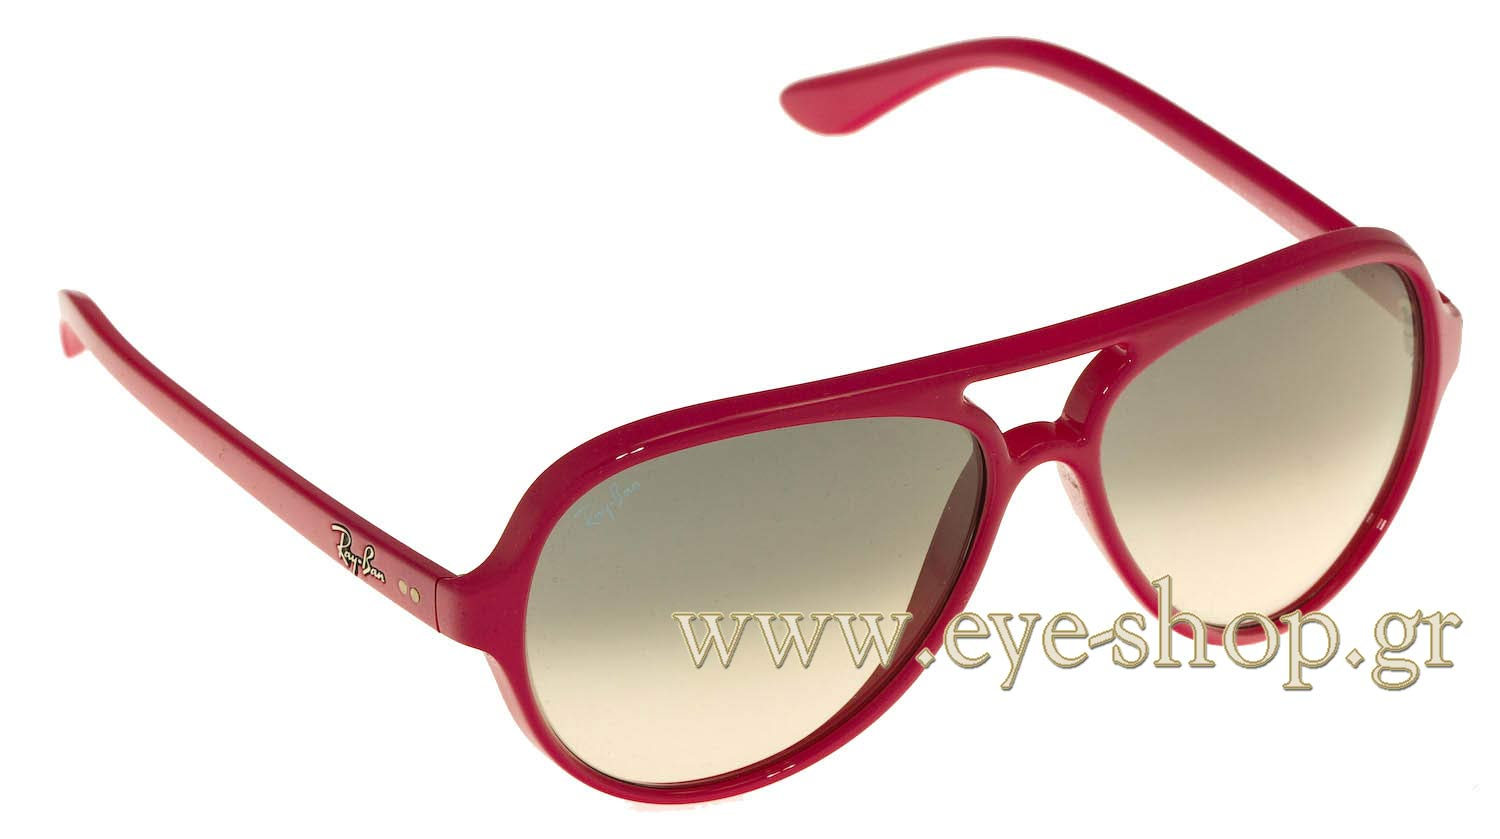 37b7d4487e KATIE-PRICE WEARING SUNGLASSES RAYBAN-4125-CATS-5000 sunglasses 758 32  ΚΑΤΑΡΓΗΘΗΚΕ - 59